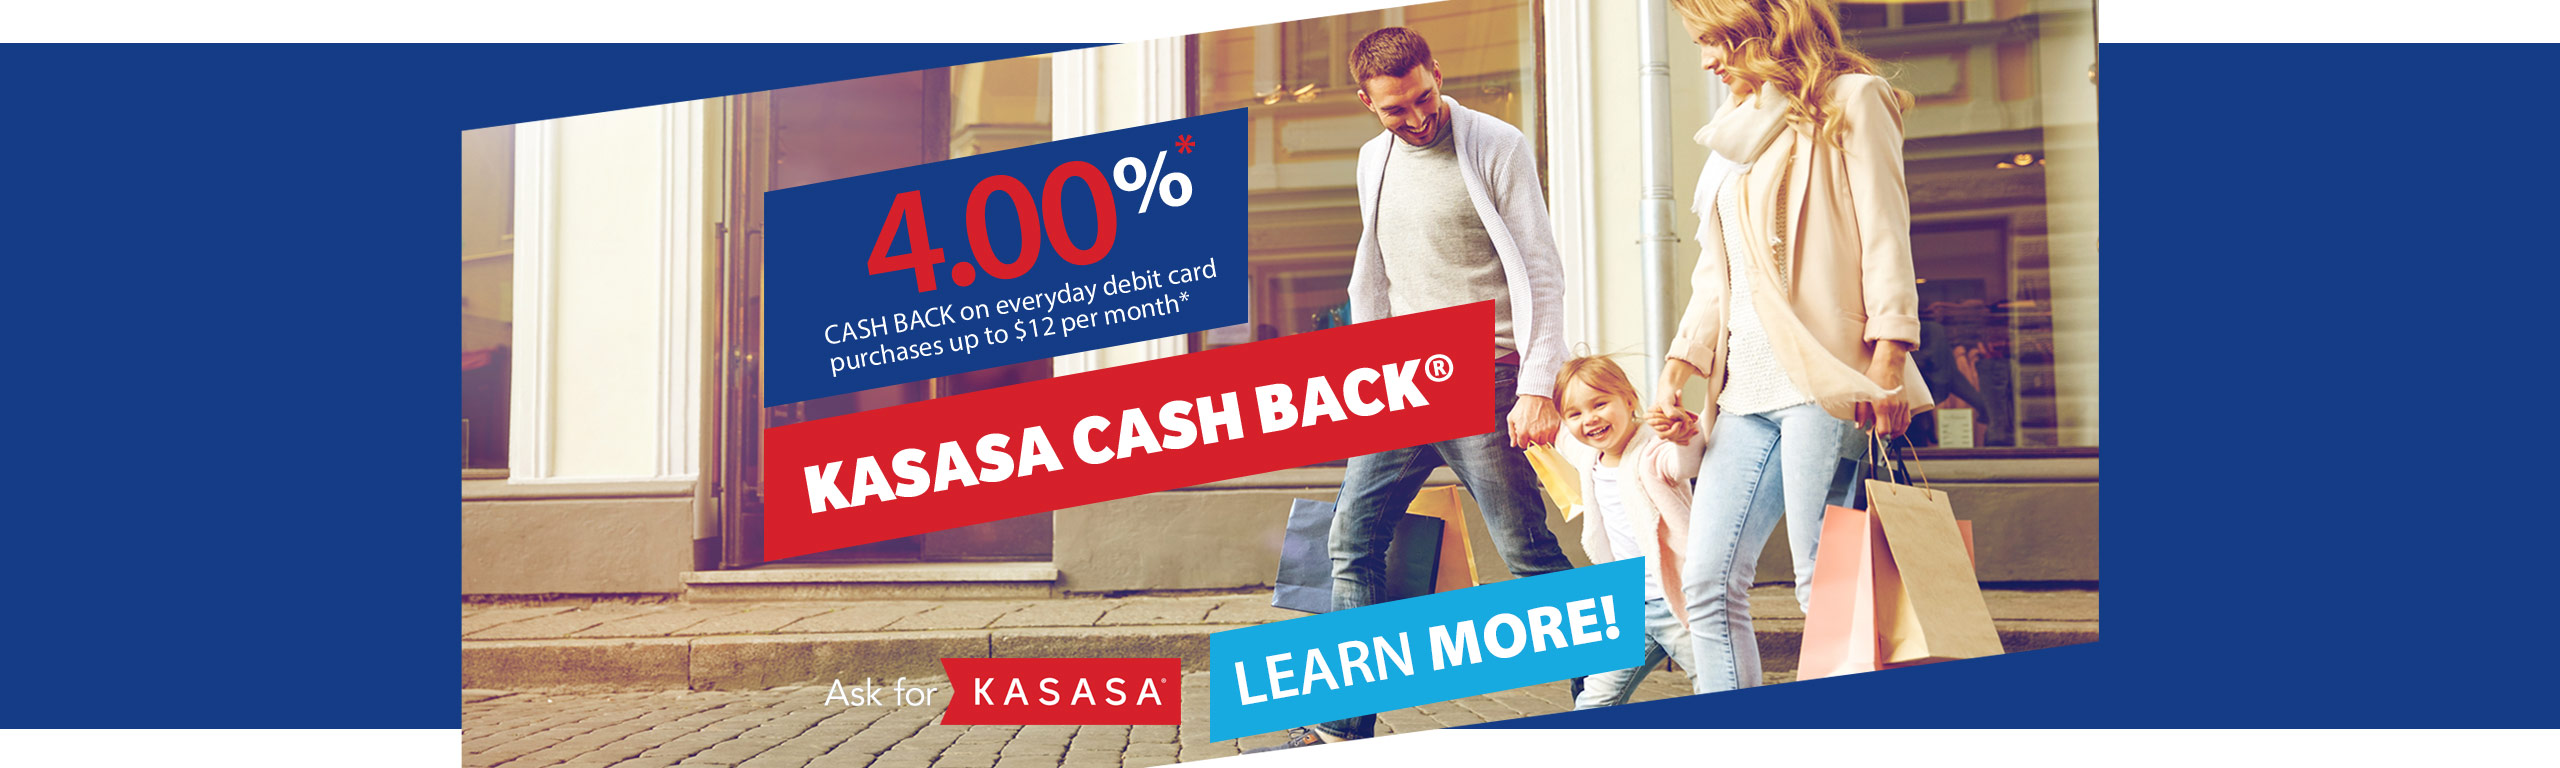 Ask for Kasasa Cash Back. 4.00% CASH BACK on everyday debit card purchases up to $12 per month*